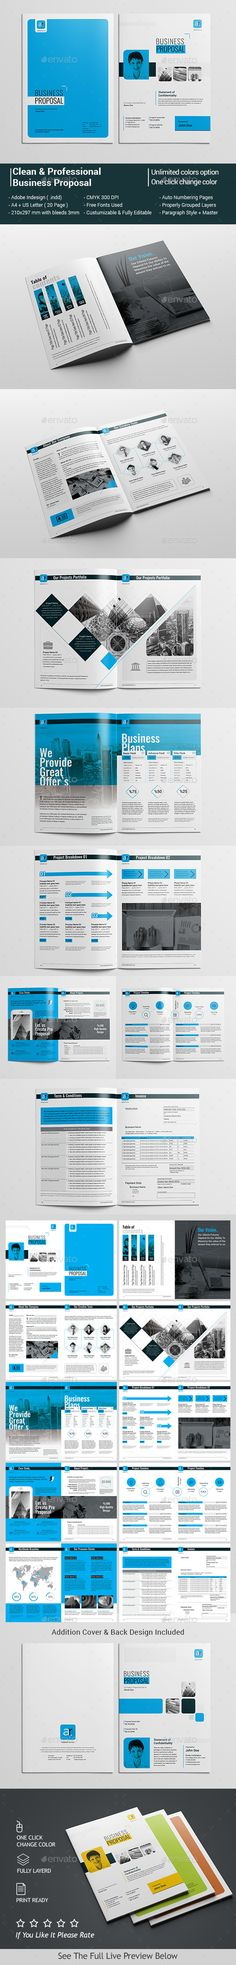 Sponsorship Proposal Proposals - proposal template for sponsorship